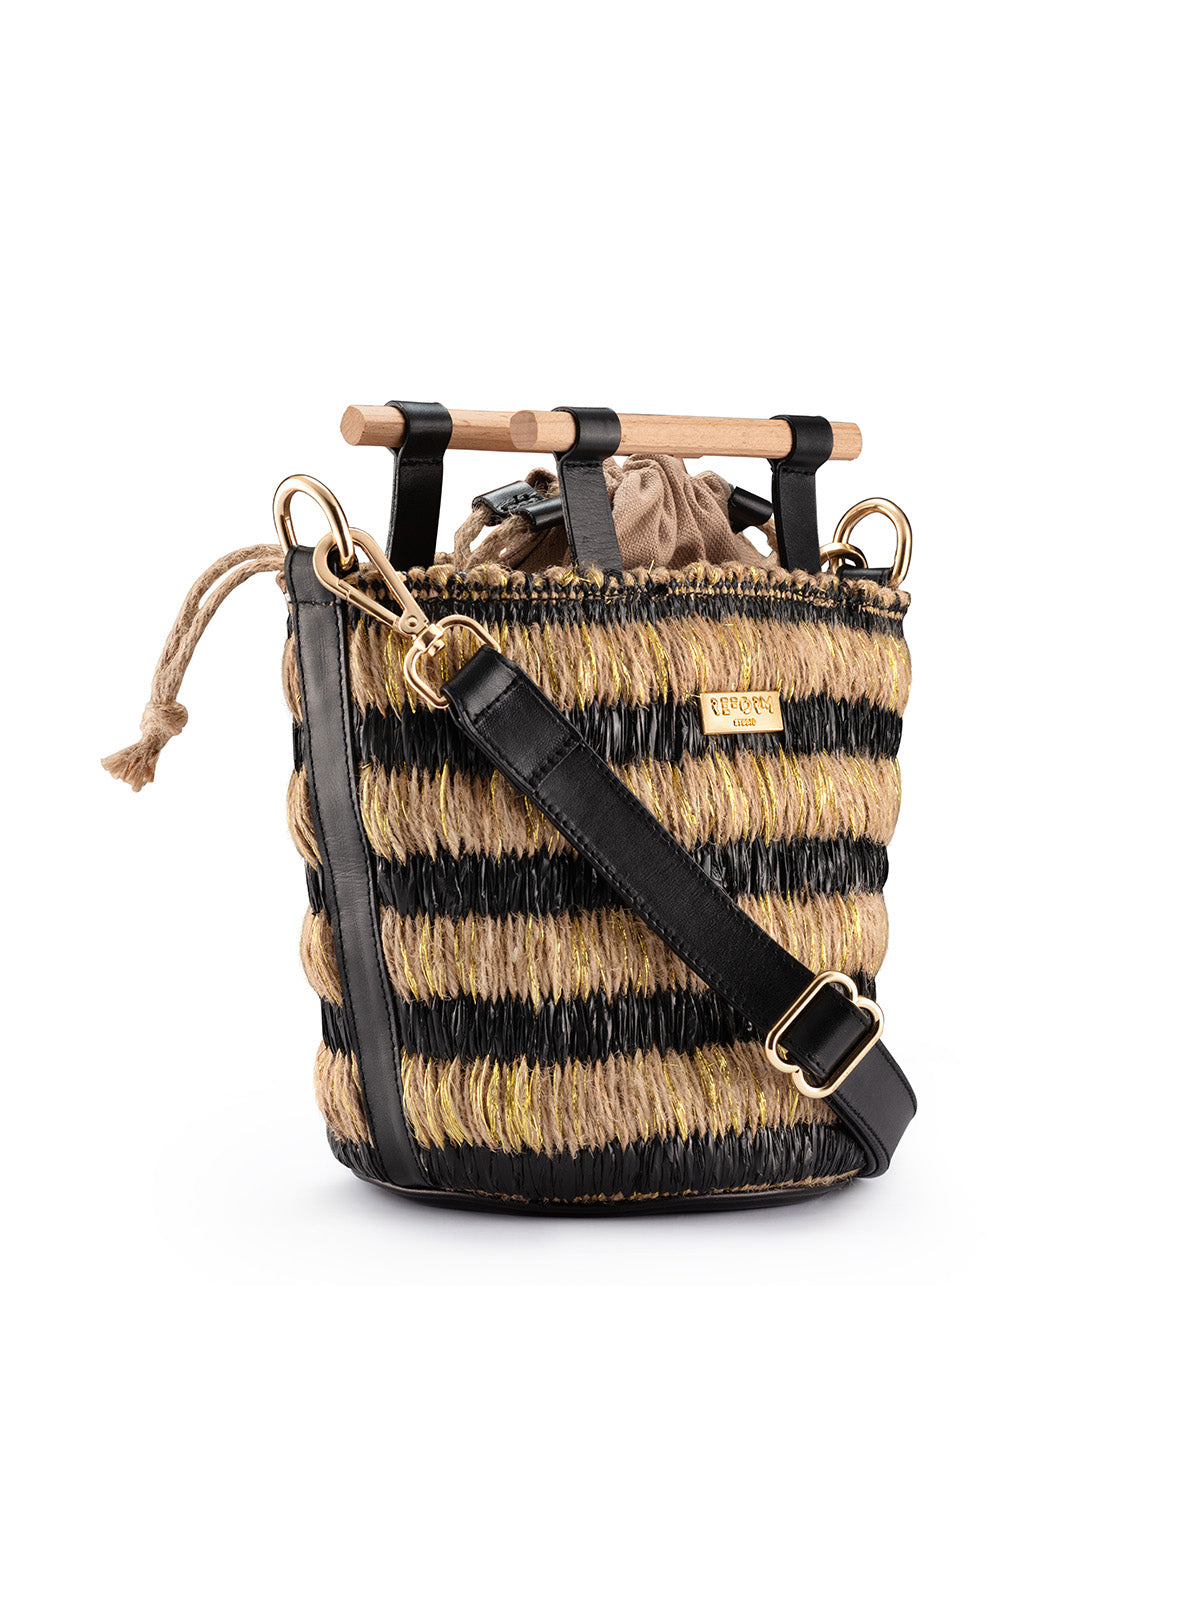 Mini Afro Basket in Black and Gold